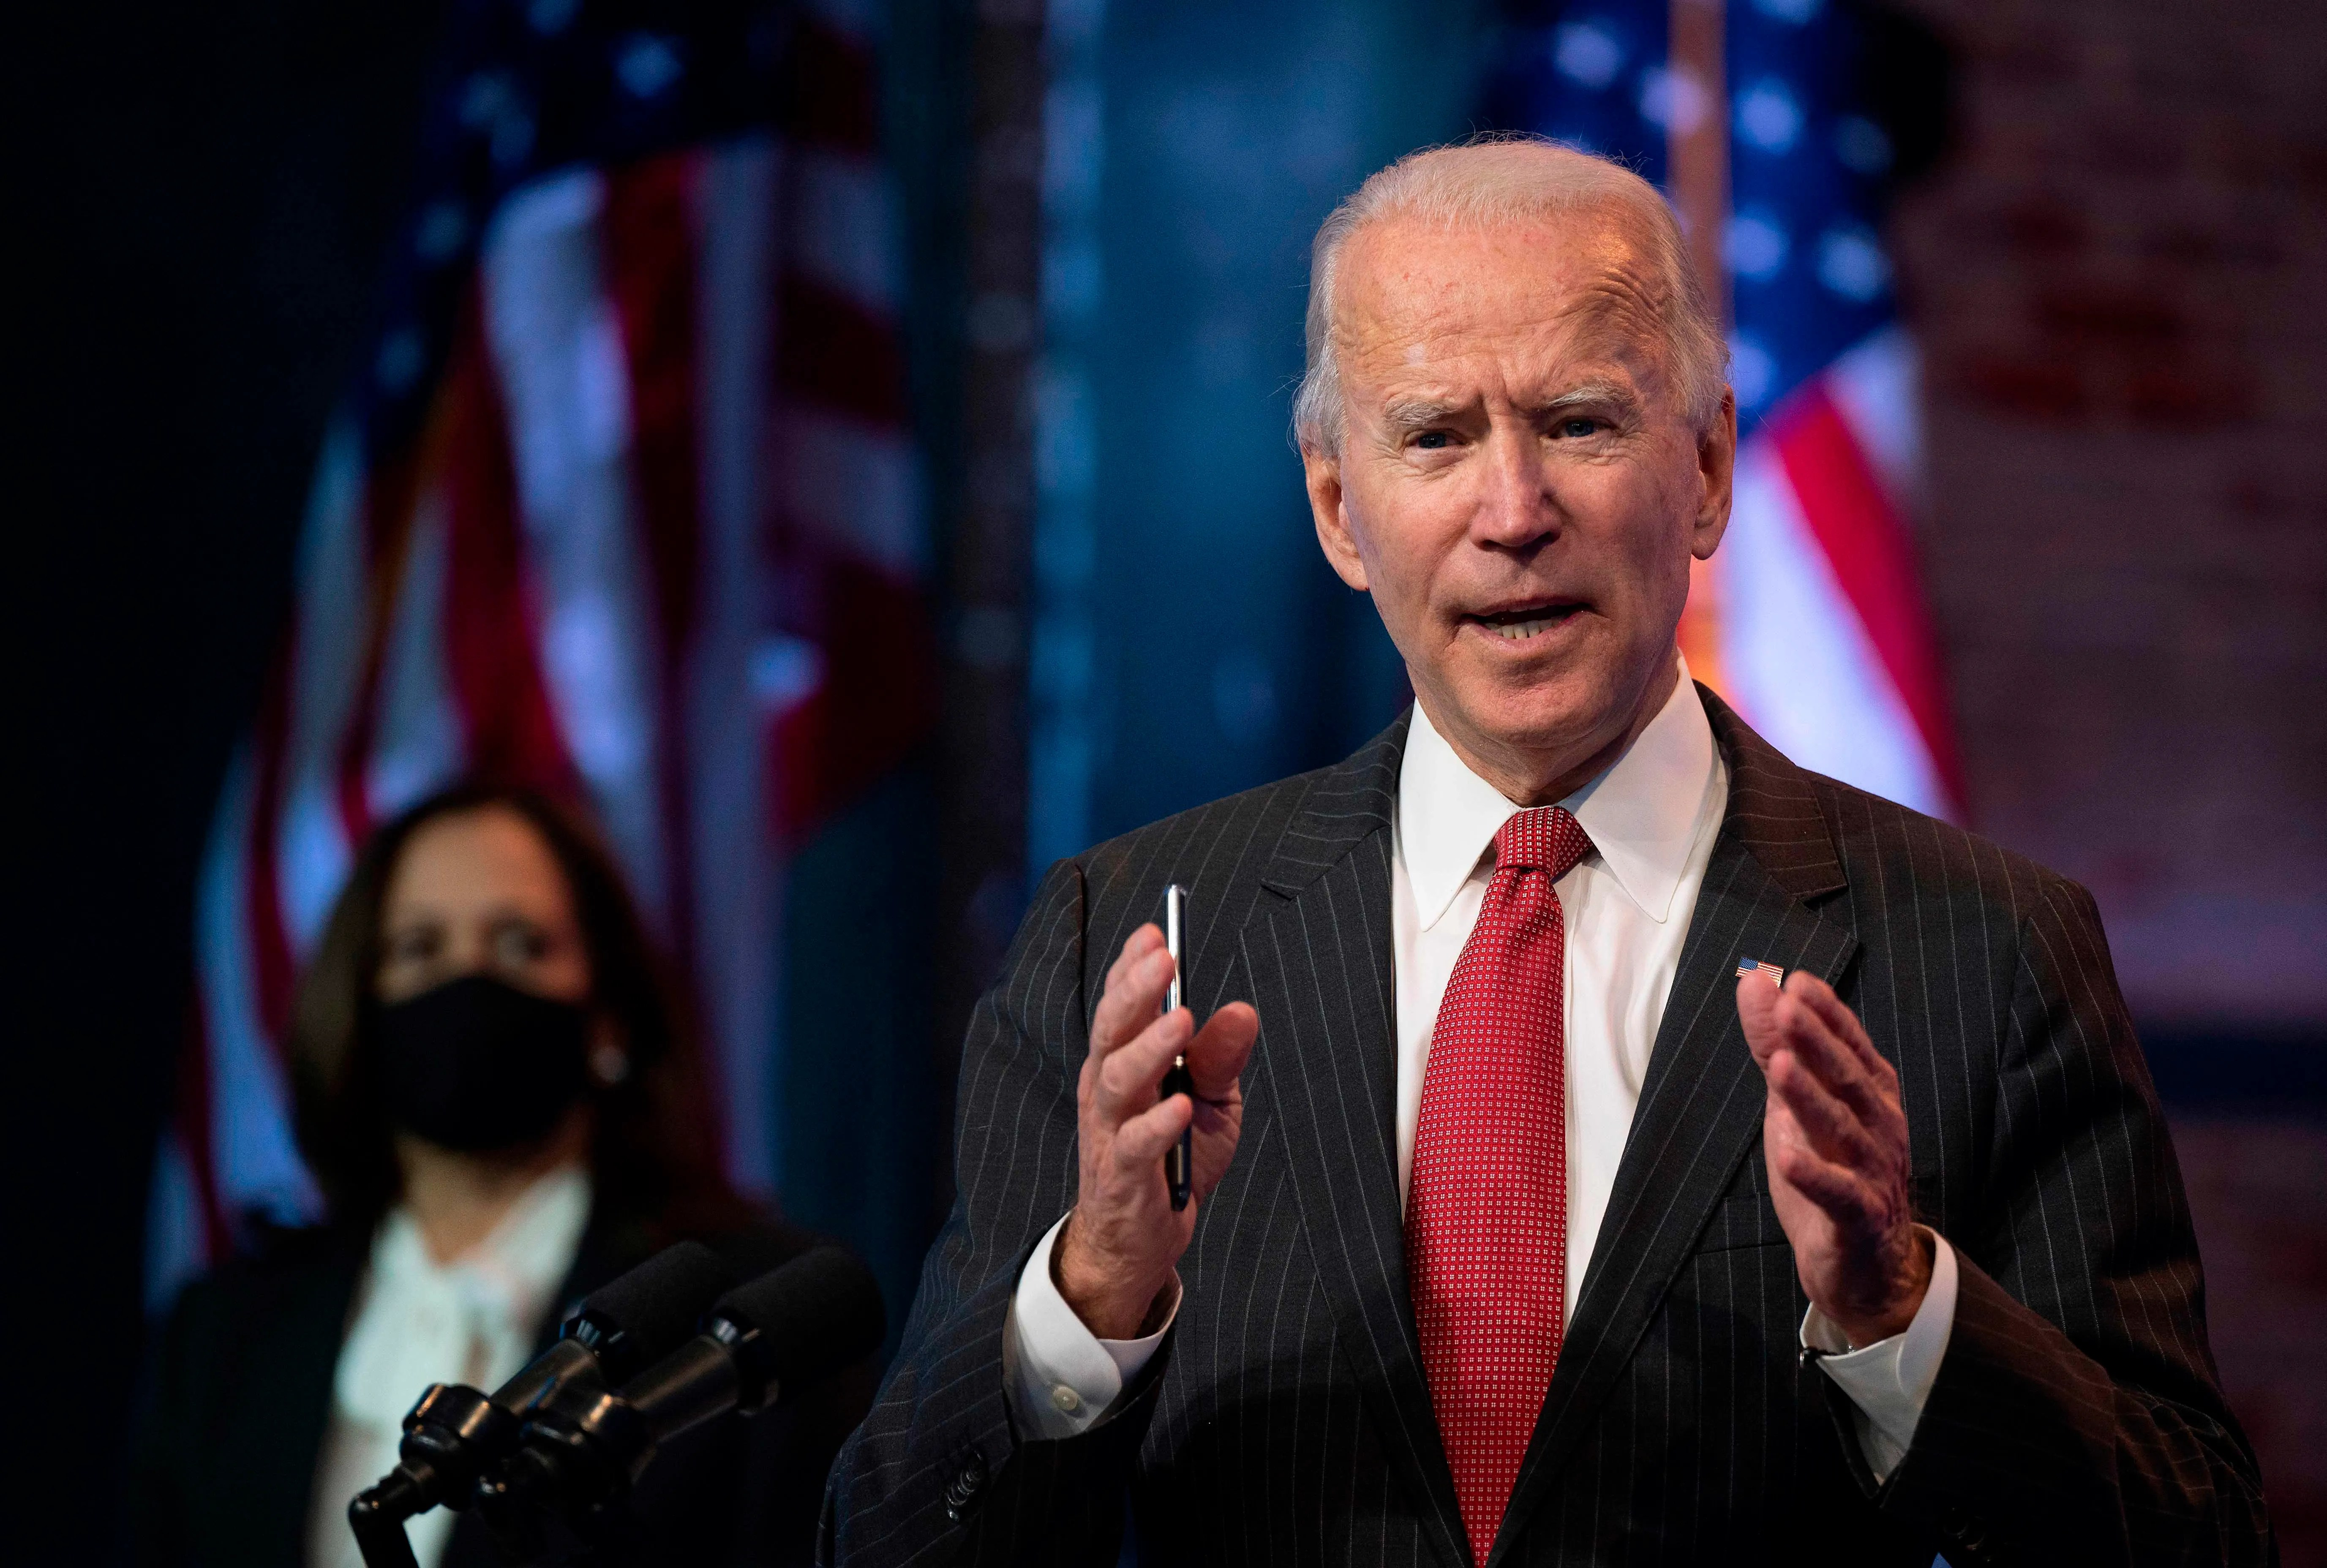 President-elect Joe Biden speaks after a meeting with governors in Wilmington, Delaware, on Thursday. Biden said today he would not order a nationwide shutdown to fight the COVID-19 pandemic despite a surge in cases.